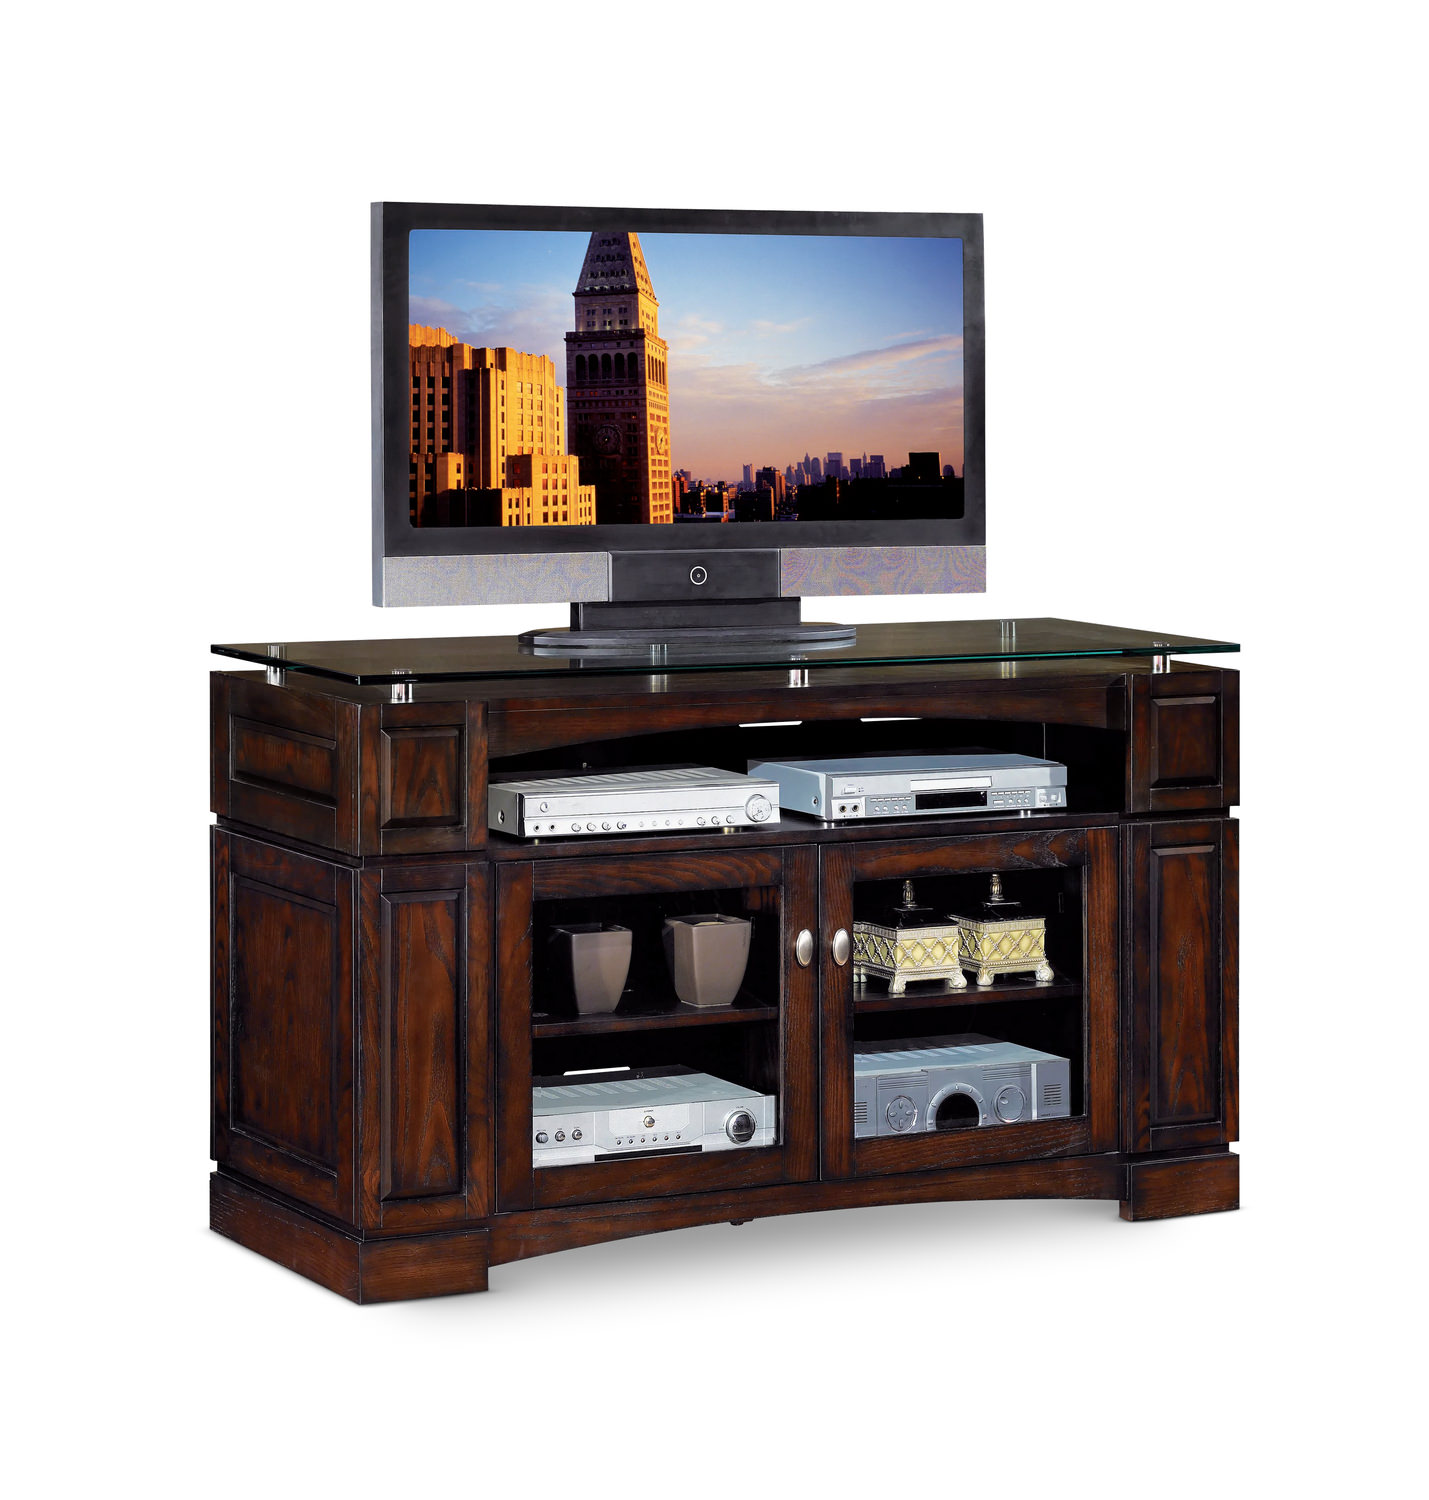 301 Moved Permanently: modern media console